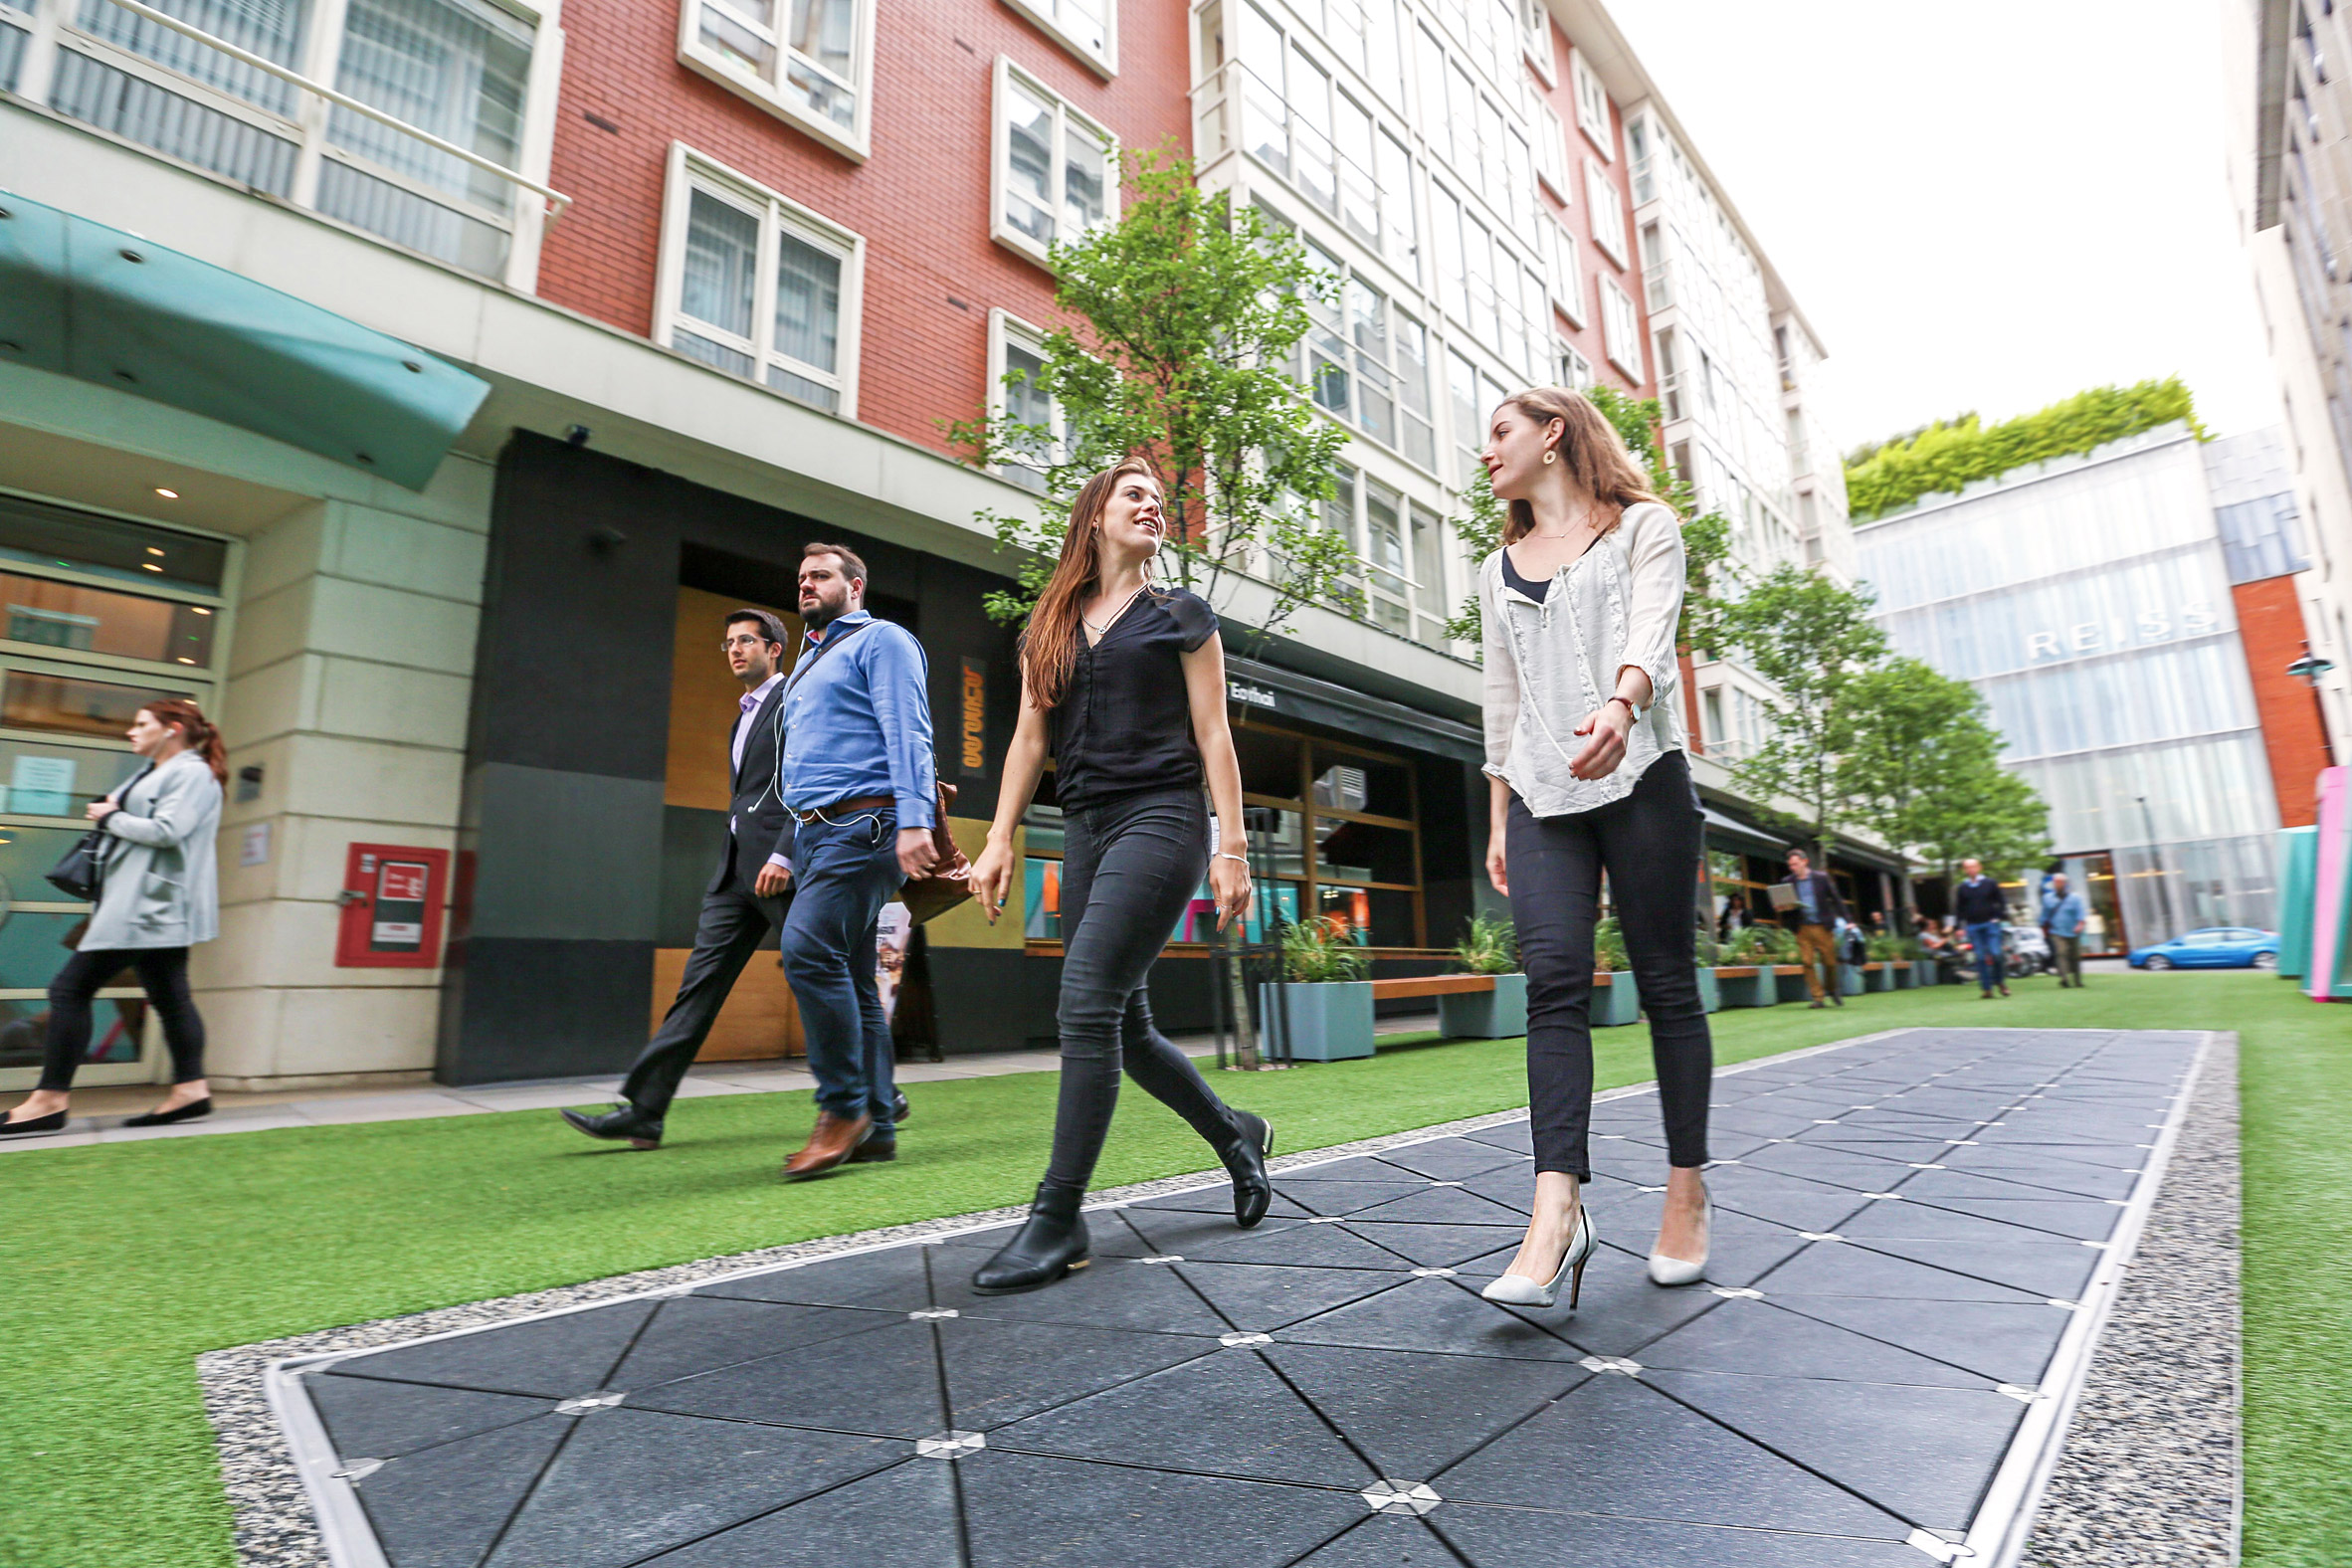 Pavegen's floor tiles could power future cities with footsteps